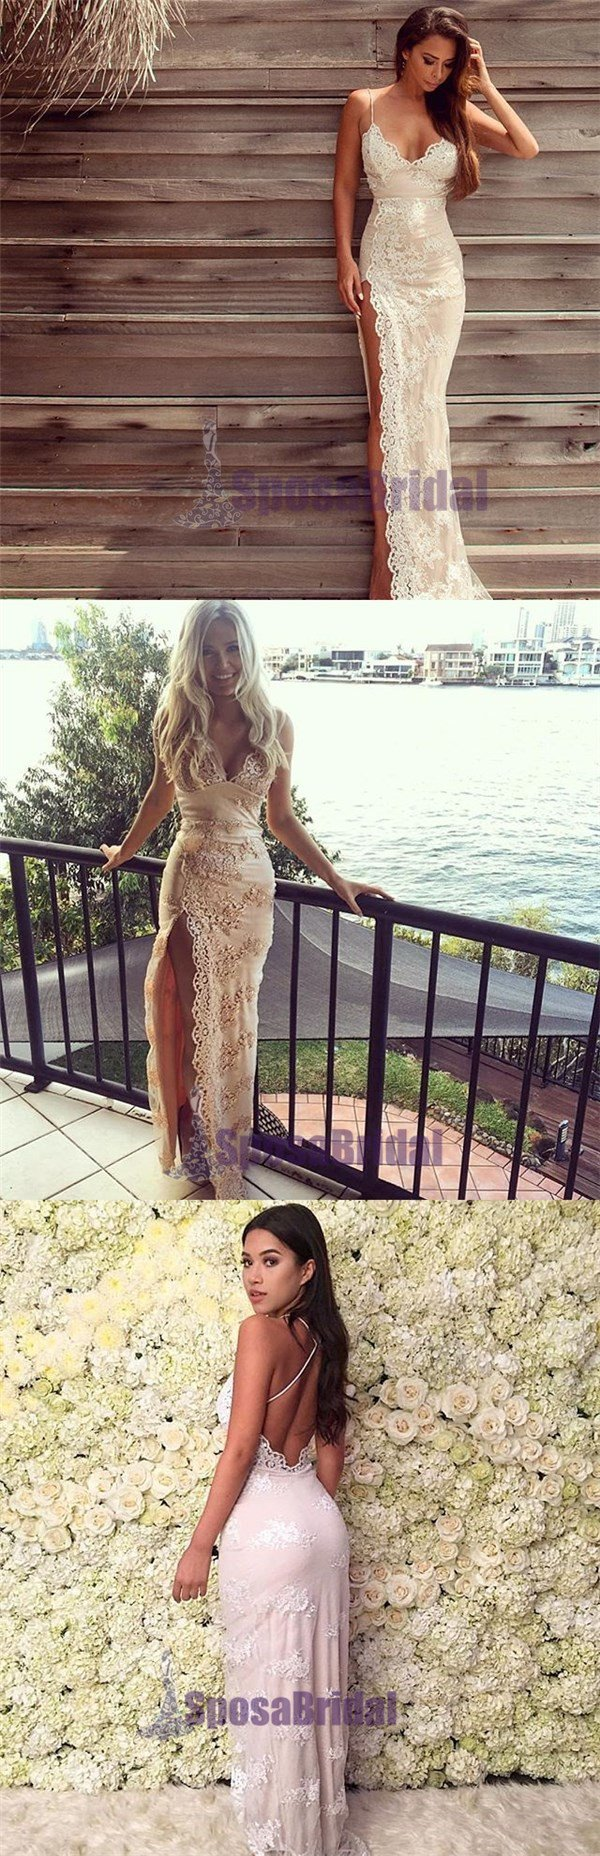 Charming Lace Sexy Spaghetti Straps Mermaid Side Slit Prom Dress, Evening Dress, PD0442 - SposaBridal